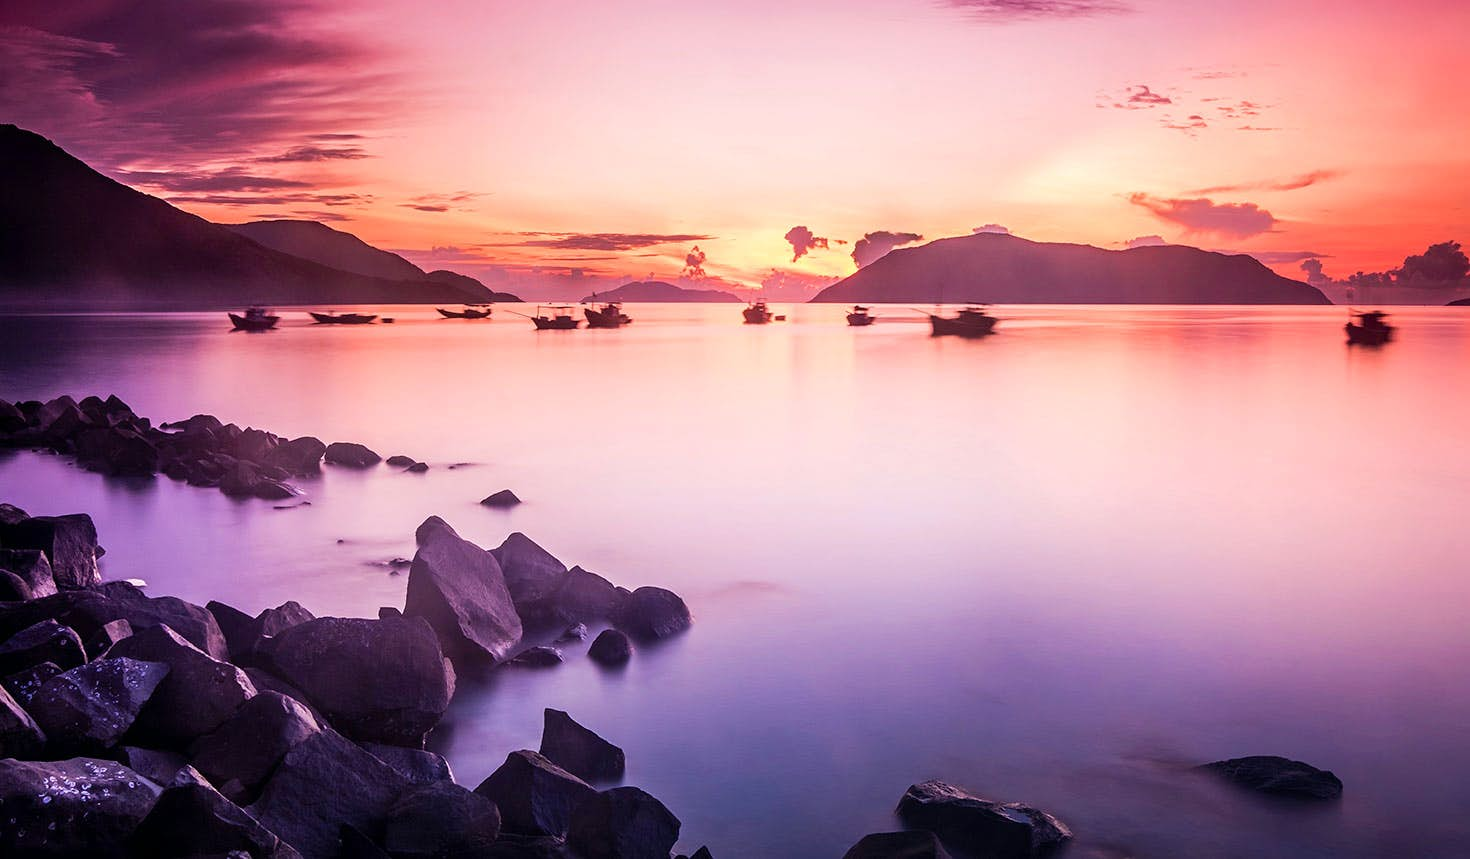 Sunrise paints the morning sky pink above the Con Dao Islands, Vietnam Image: Cao Tran Tho / Shutterstock